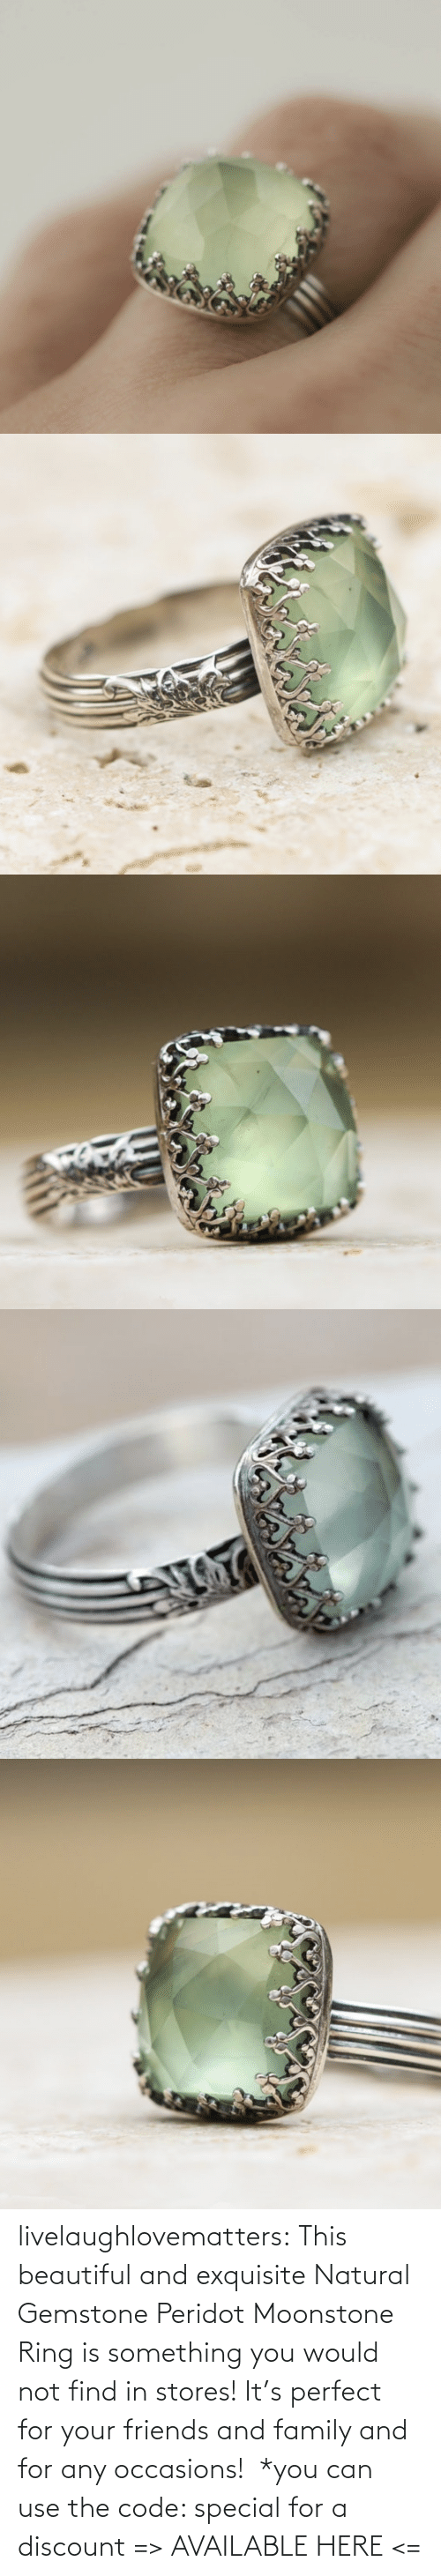 beautiful: livelaughlovematters: This beautiful and exquisite Natural Gemstone Peridot Moonstone Ring is something you would not find in stores! It's perfect for your friends and family and for any occasions!  *you can use the code: special for a discount => AVAILABLE HERE <=